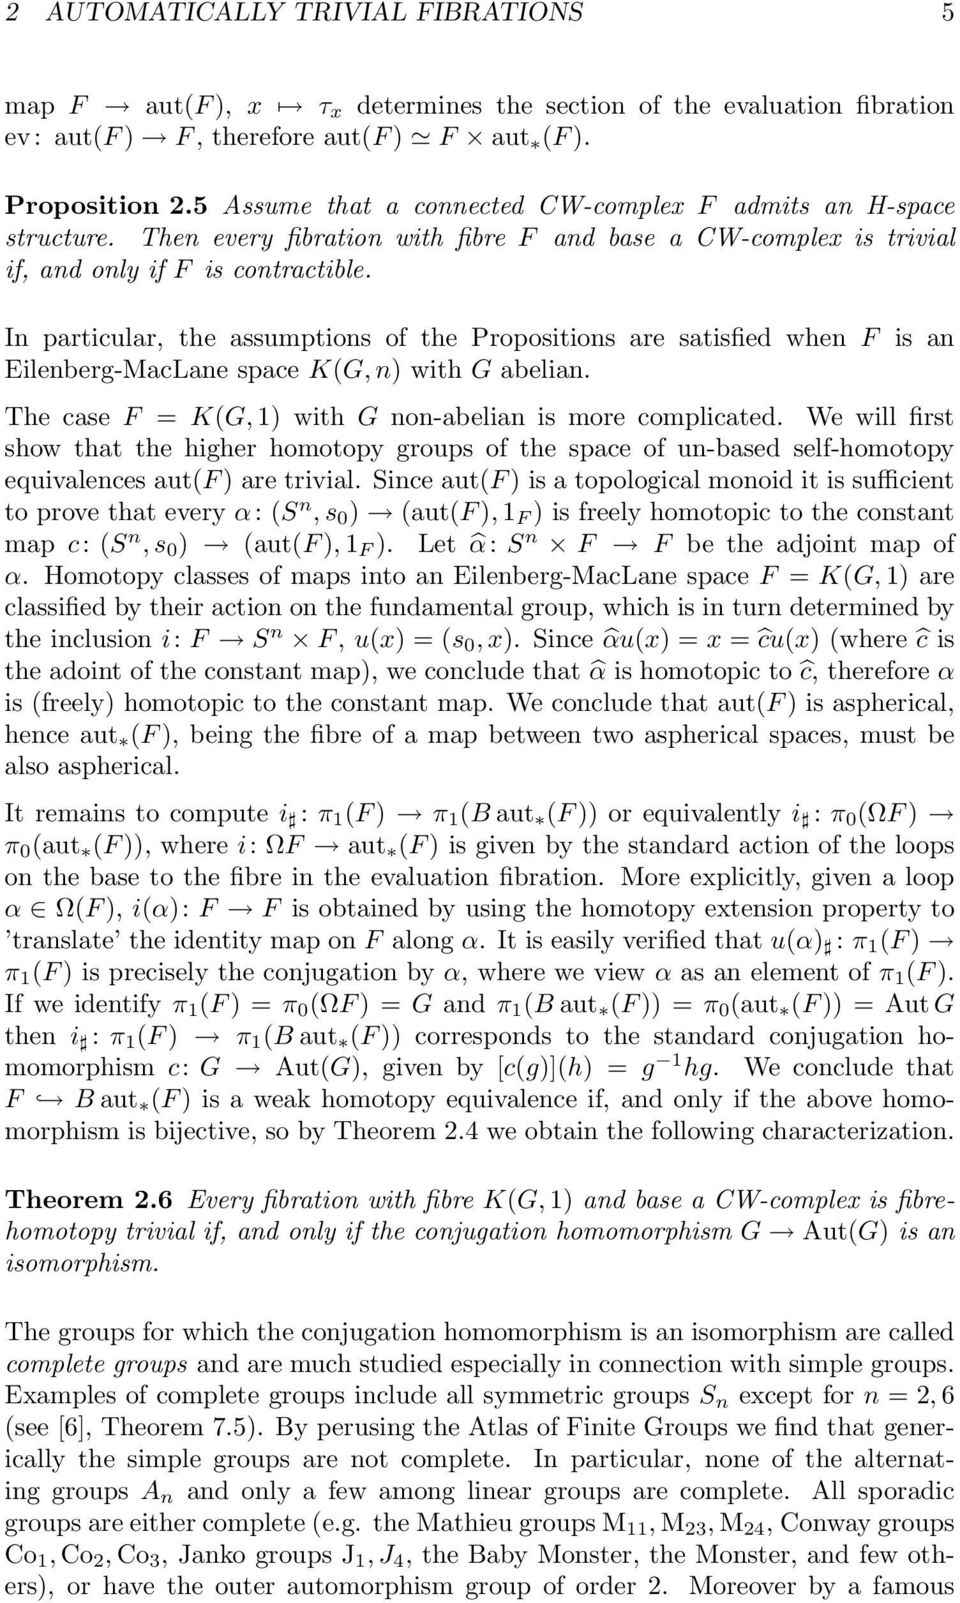 In particular, the assumptions of the Propositions are satisfied when F is an Eilenberg-MacLane space K(G, n) with G abelian. The case F = K(G, 1) with G non-abelian is more complicated.